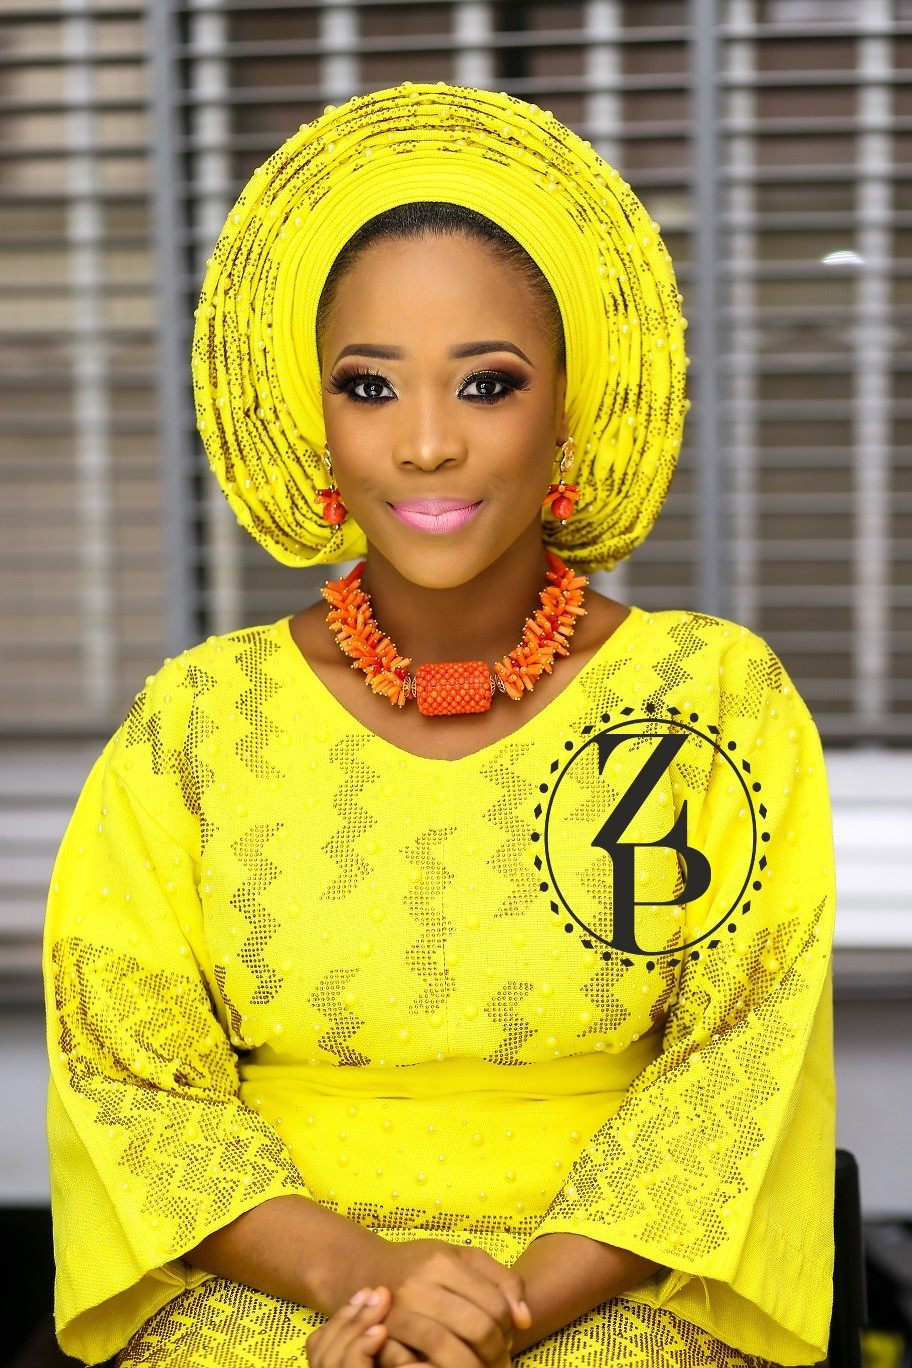 nigerian-woman-in-yoruba-yellow-iro-and-buba-orange-coral-beads.jpg